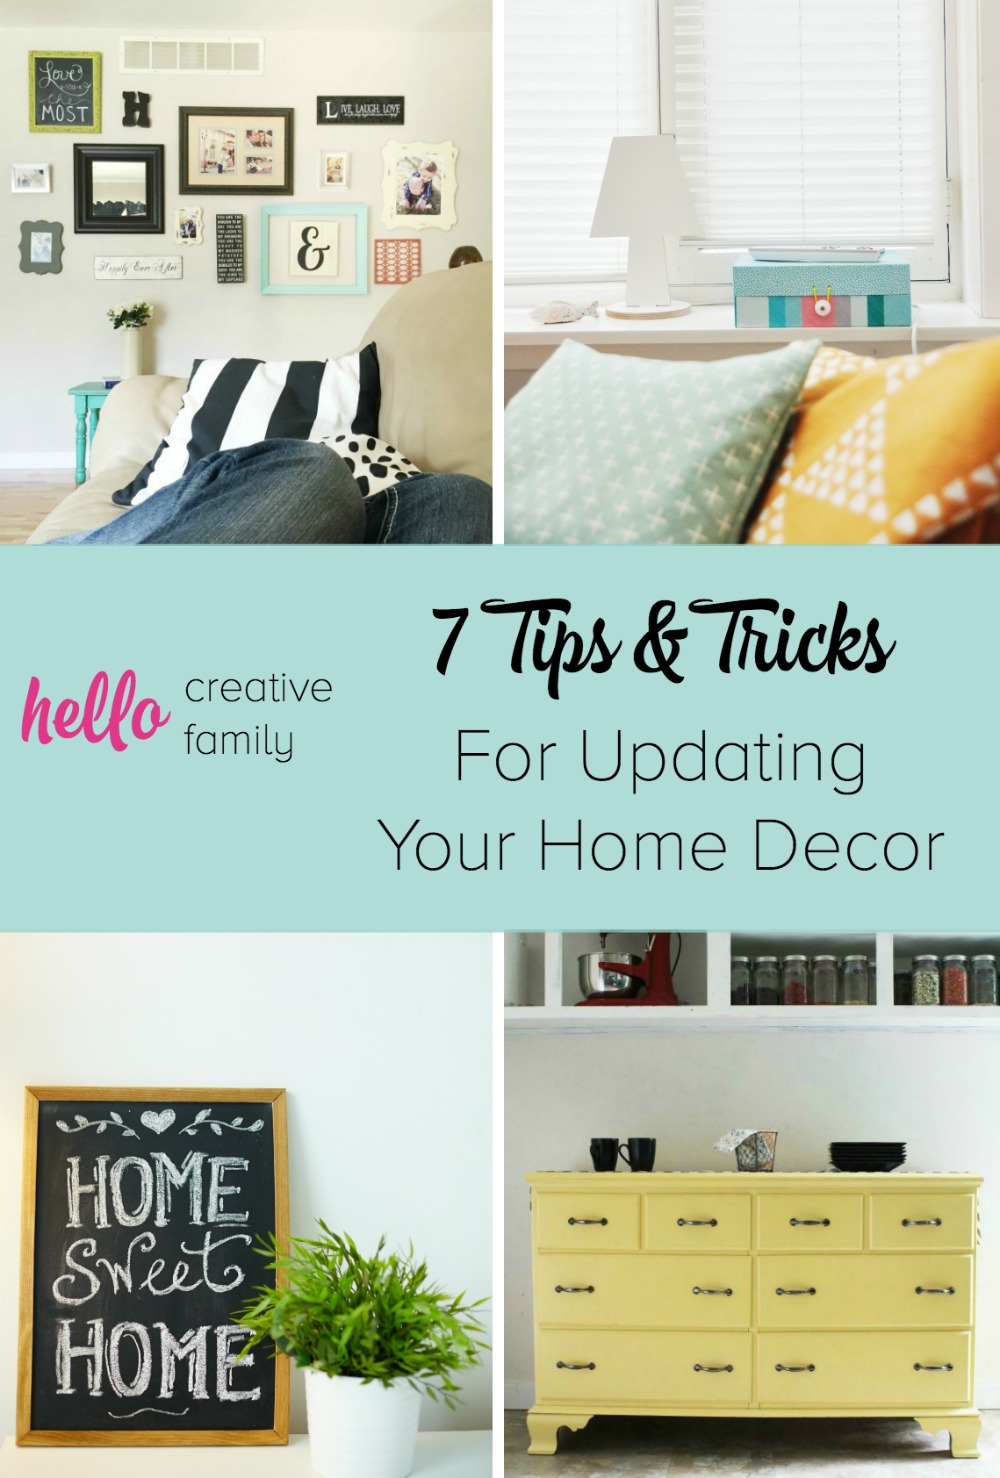 Incroyable 7 Tips And Tricks For Updating Home Decor